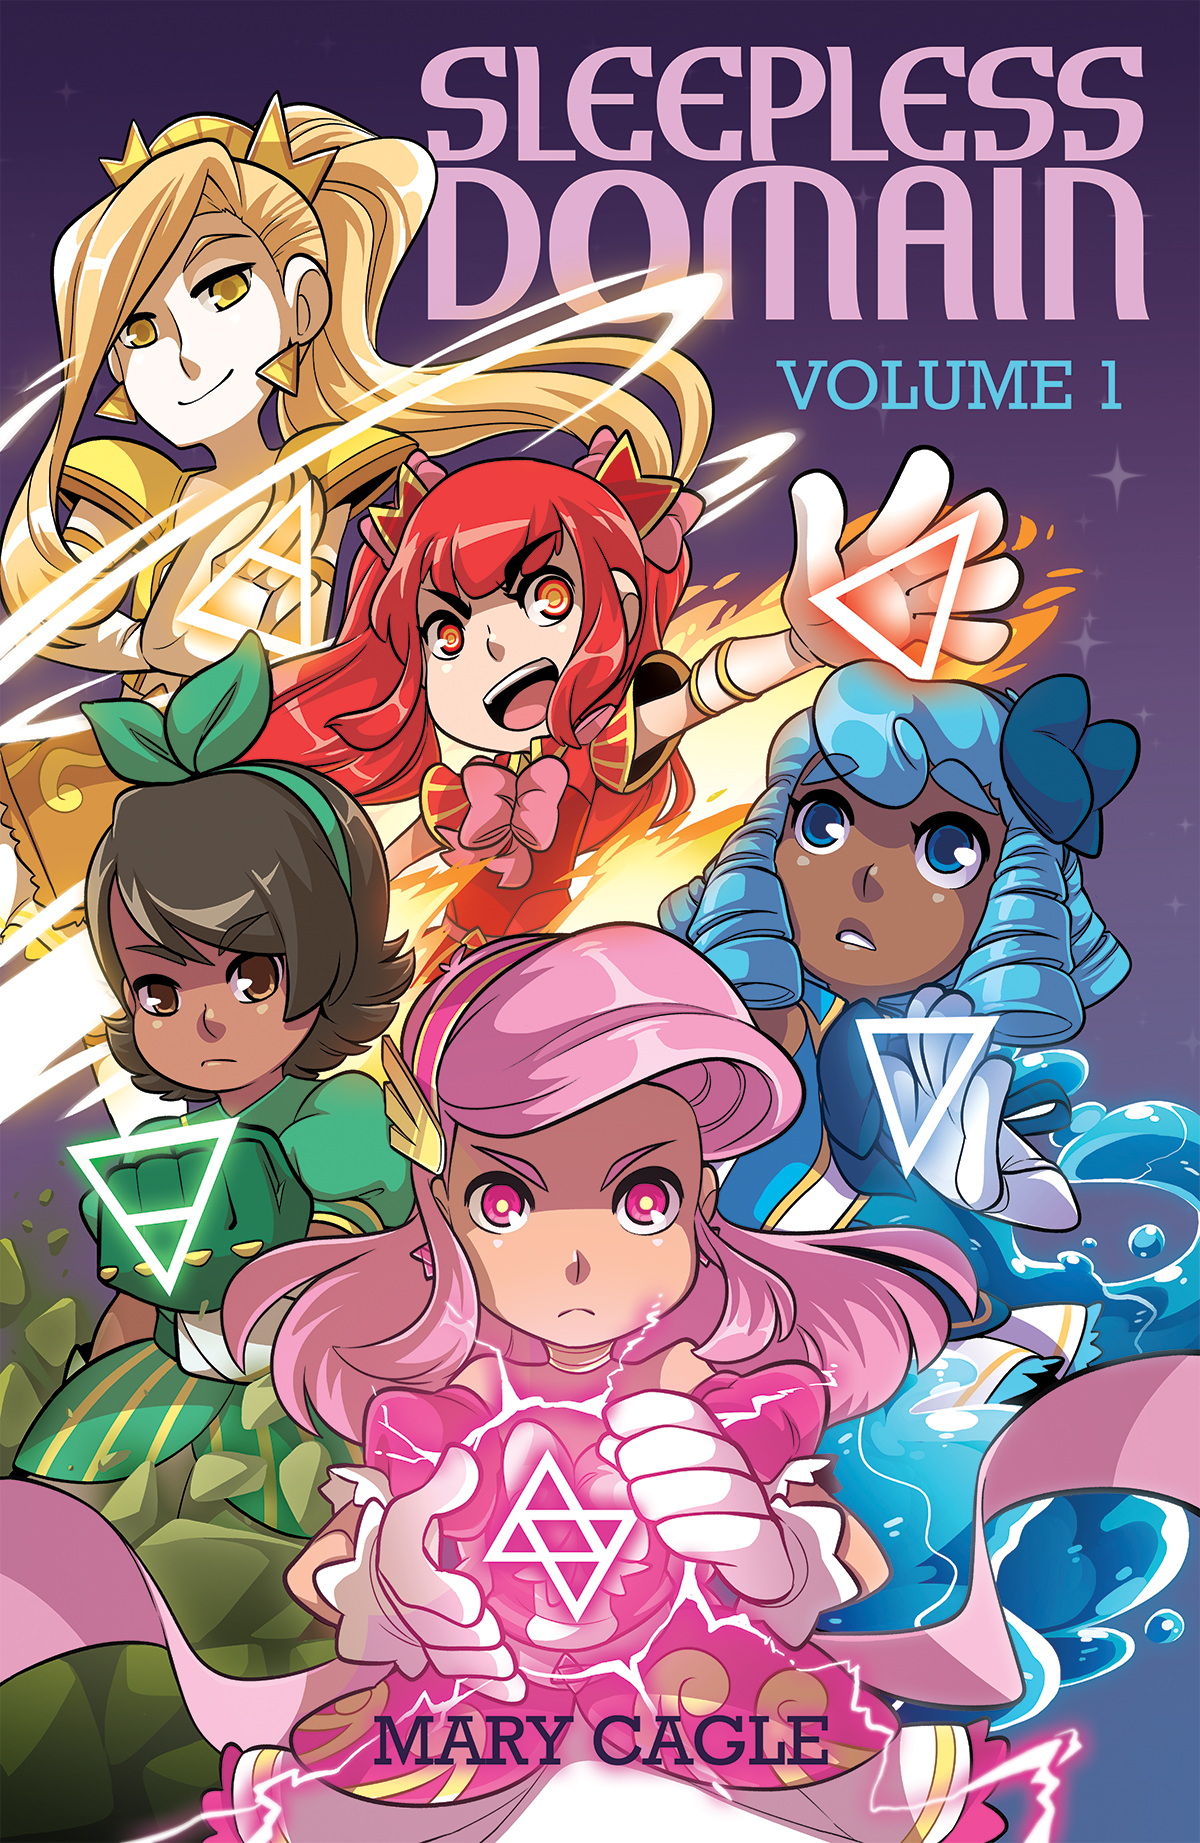 Sleepless Domain Book 1 from Sleepless Domain - Webcomic Merchandise